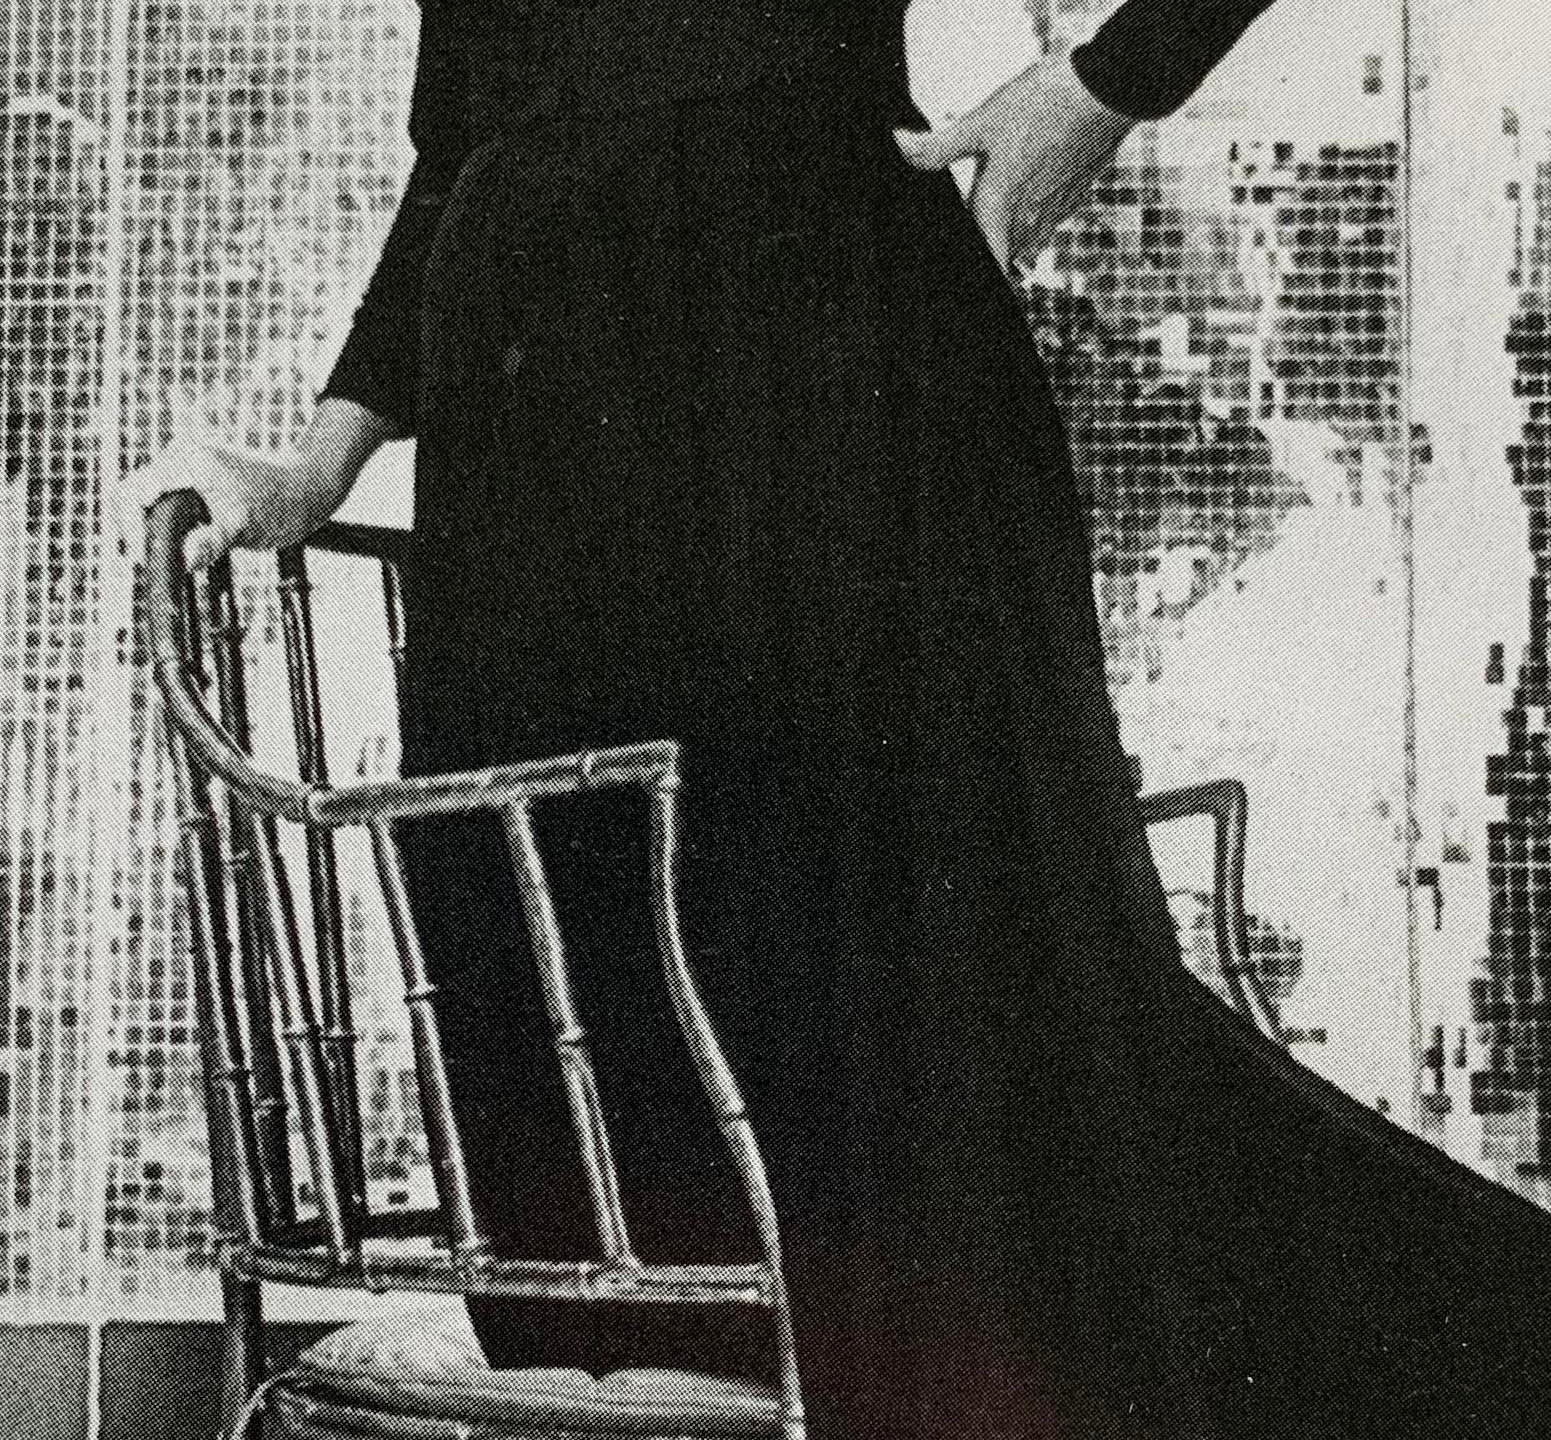 Dress by Norman Norel, 1968